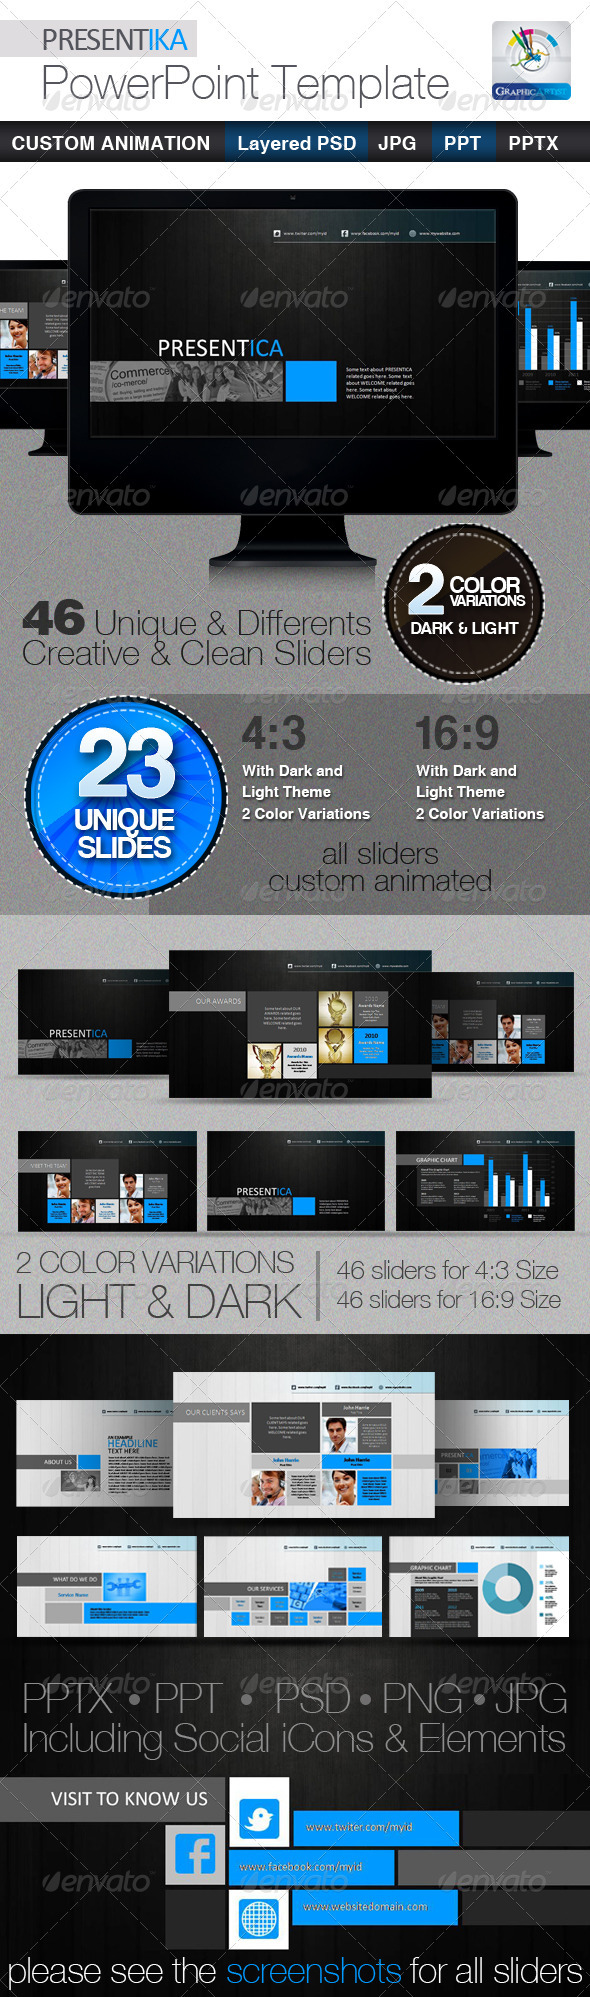 PRESENTIKA PowerPoint Presentation Templates - Finance Powerpoint Templates